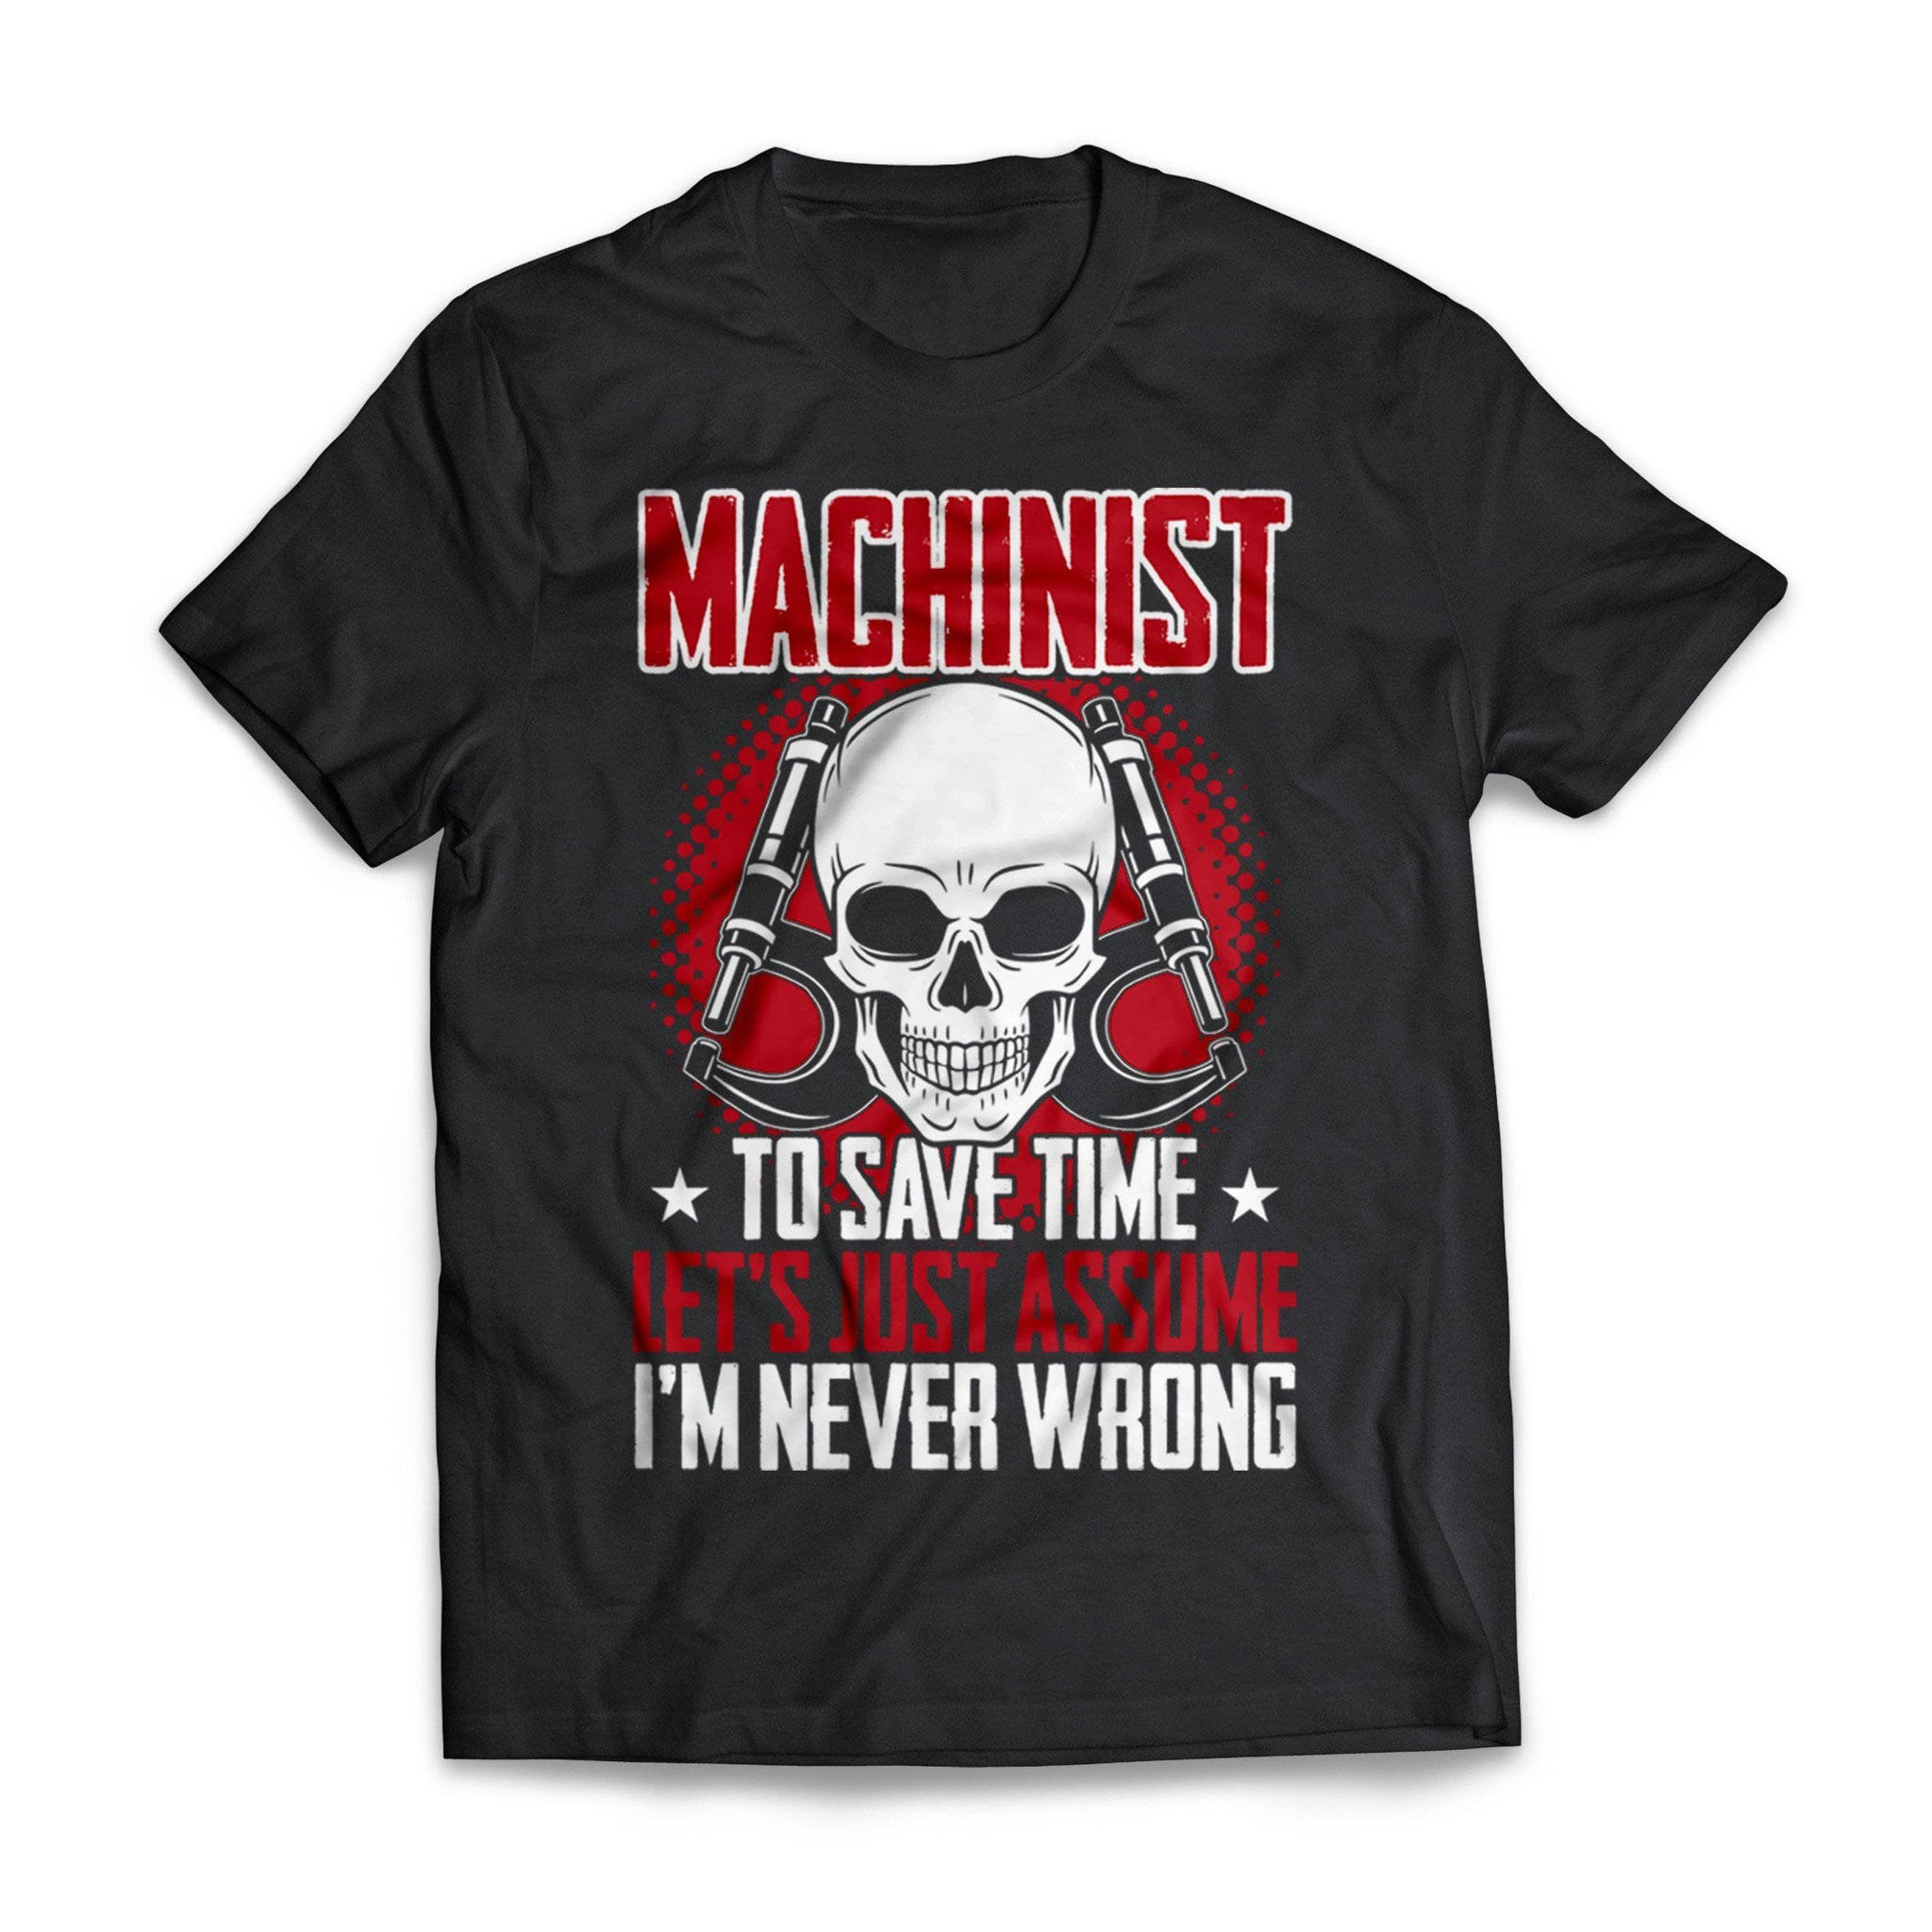 I'M Never Wrong Machinist